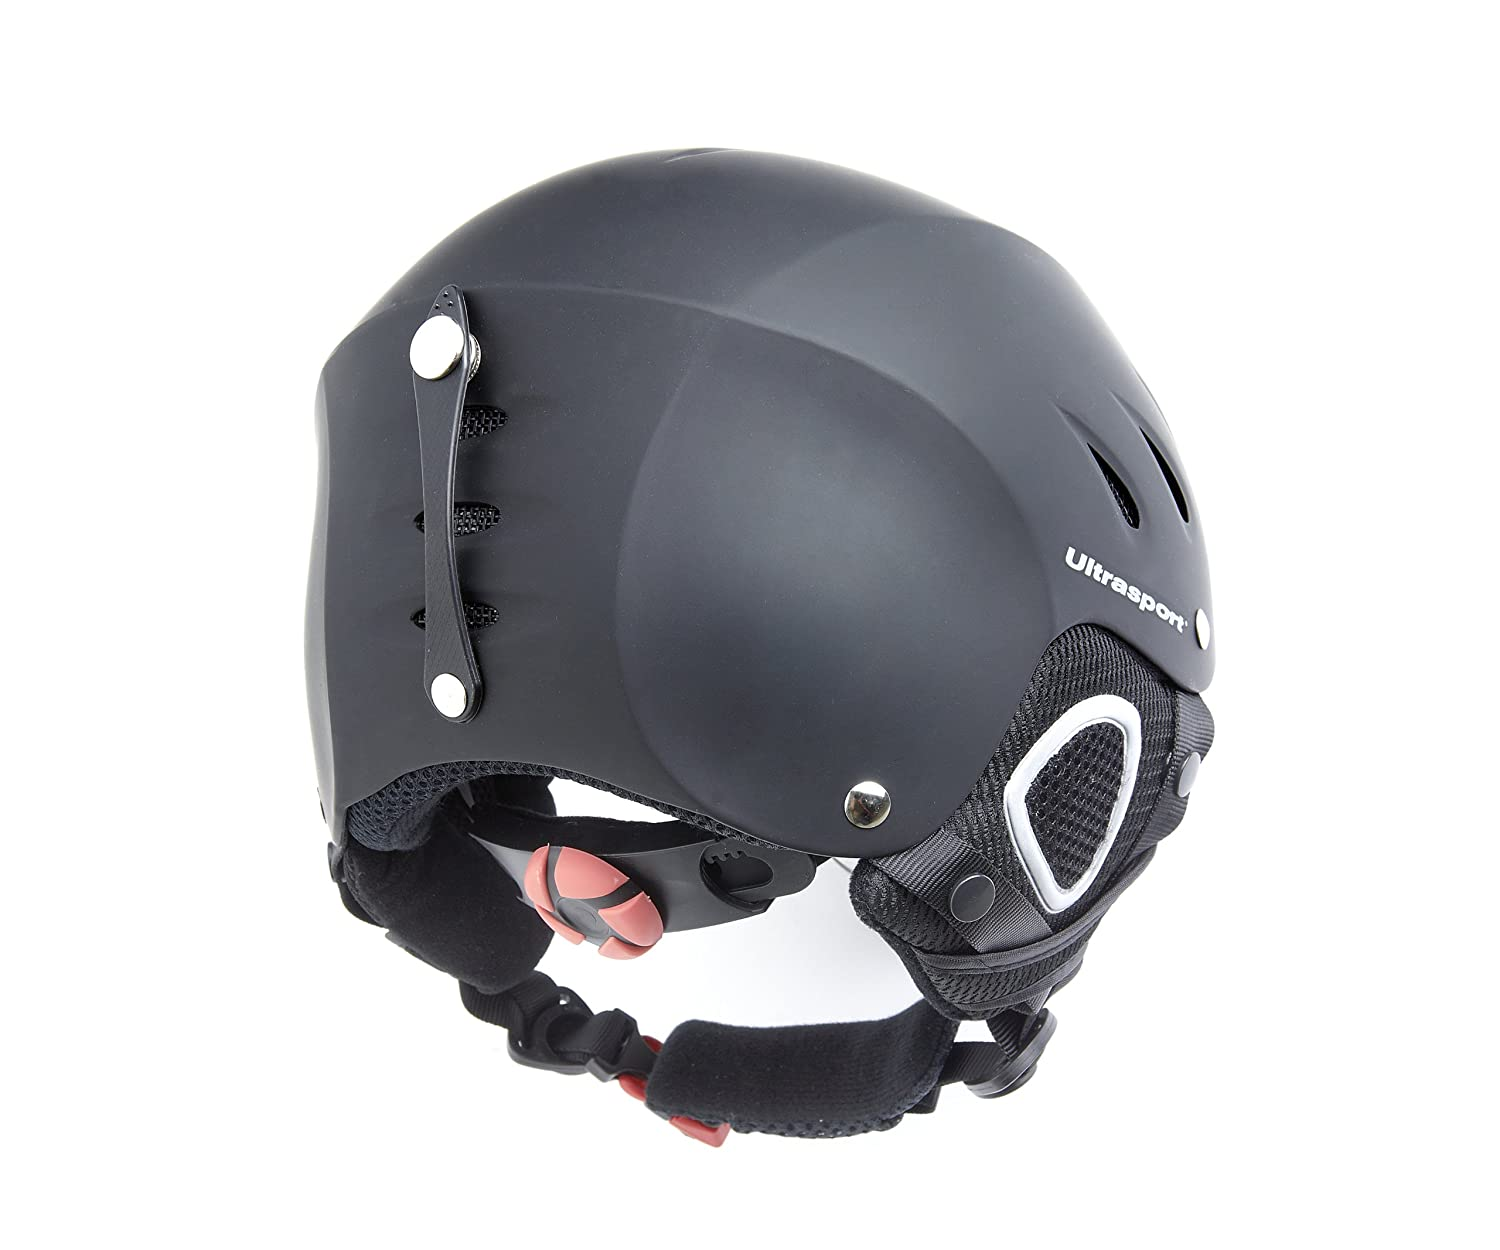 Amazon.com : Ultrasport (Ultra Sports) Ultra Sports Ski/Snowboard Helmet Race Edition 331300000028 X-Large : Sports & Outdoors